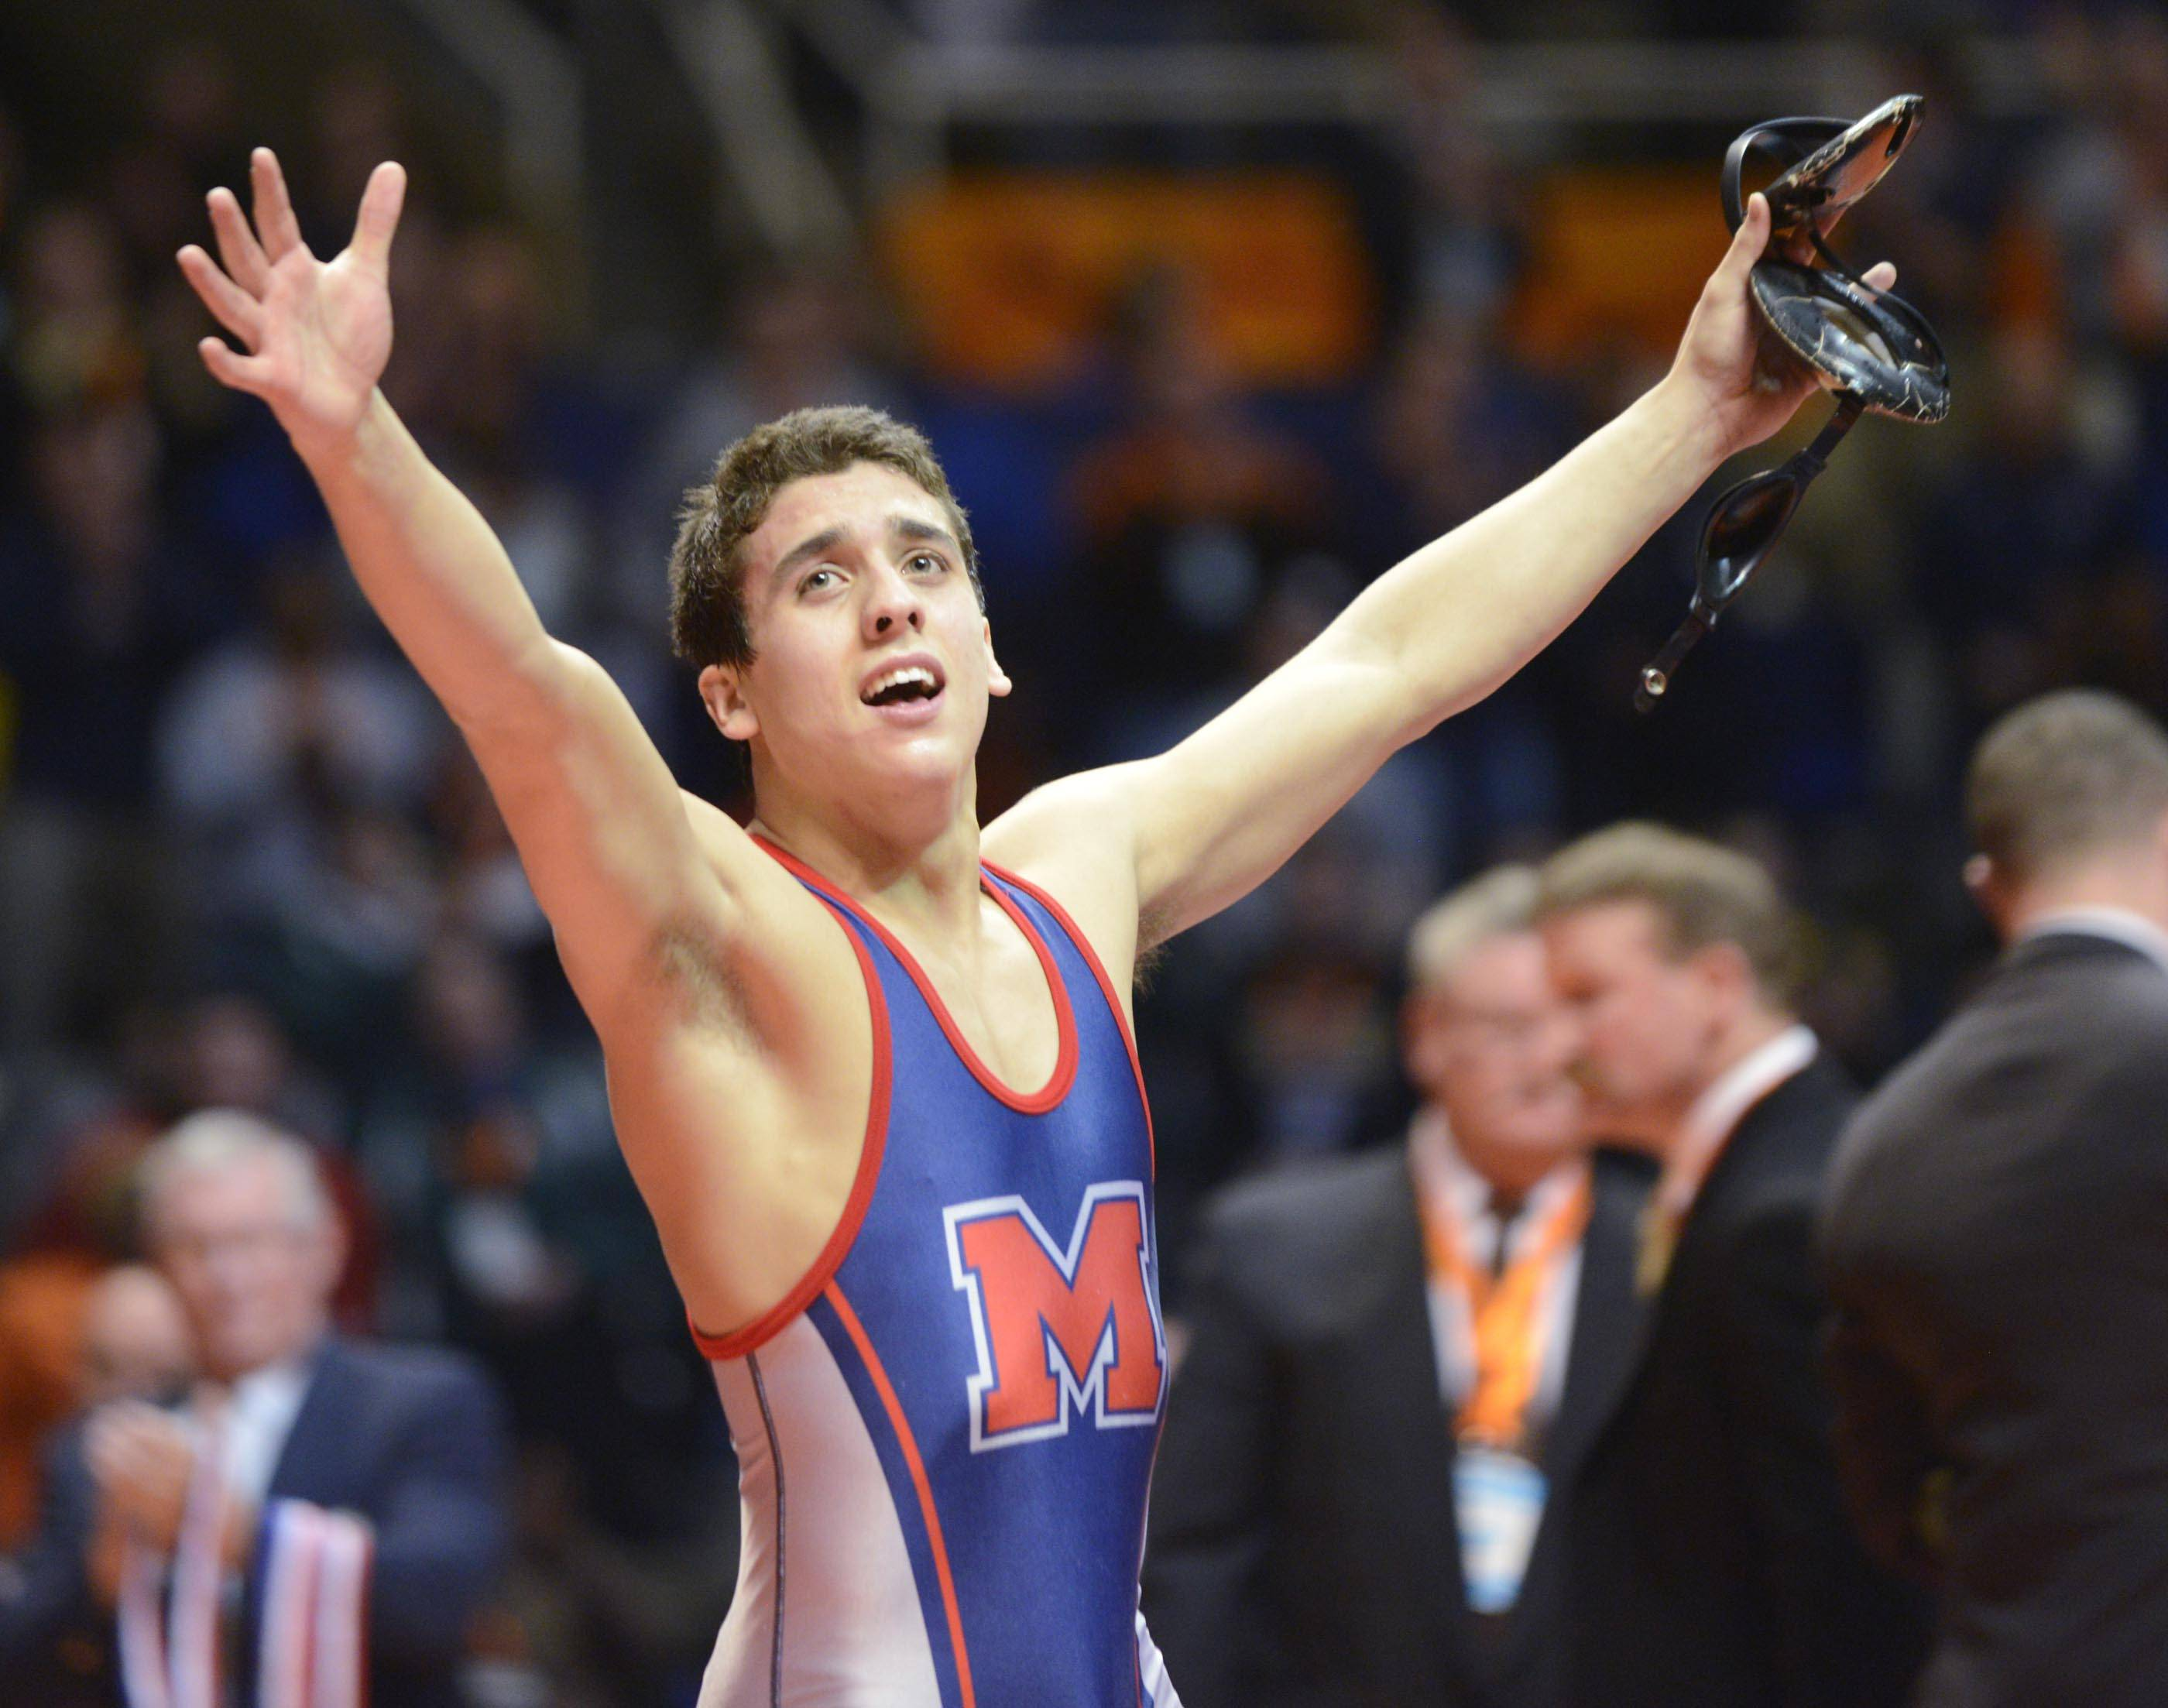 Johnny Jimeniz of Marmion celebrates his fourth state championship after beating Jon Marmolejo of Glenbard North Saturday at 126 pounds in Champaign.